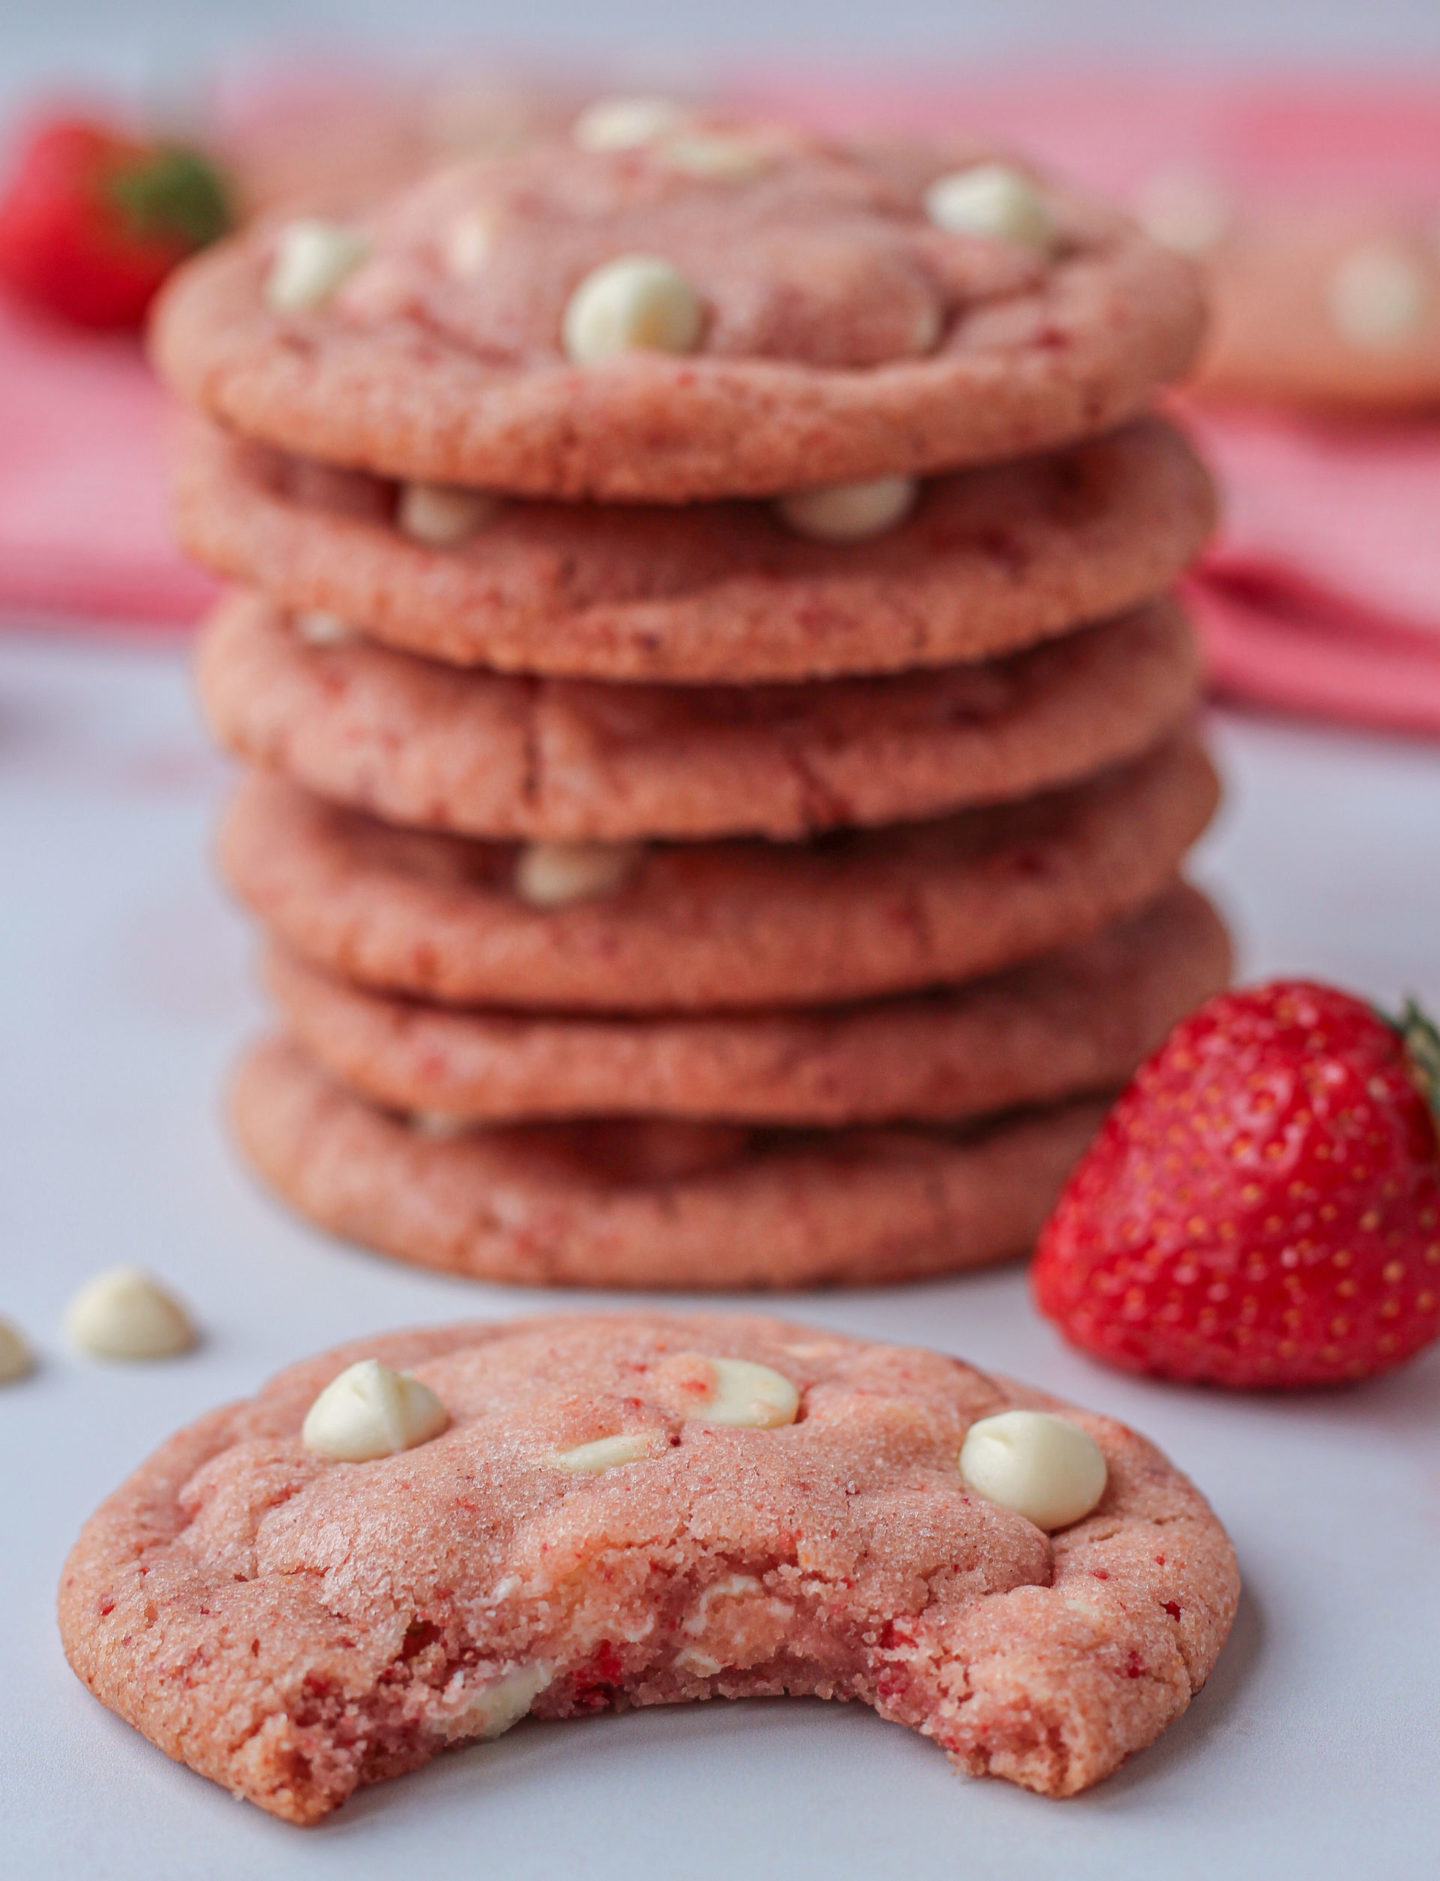 close up of a strawberry white chocolate cookie with bite taken out of it, with out of focus tower of cookies behind it